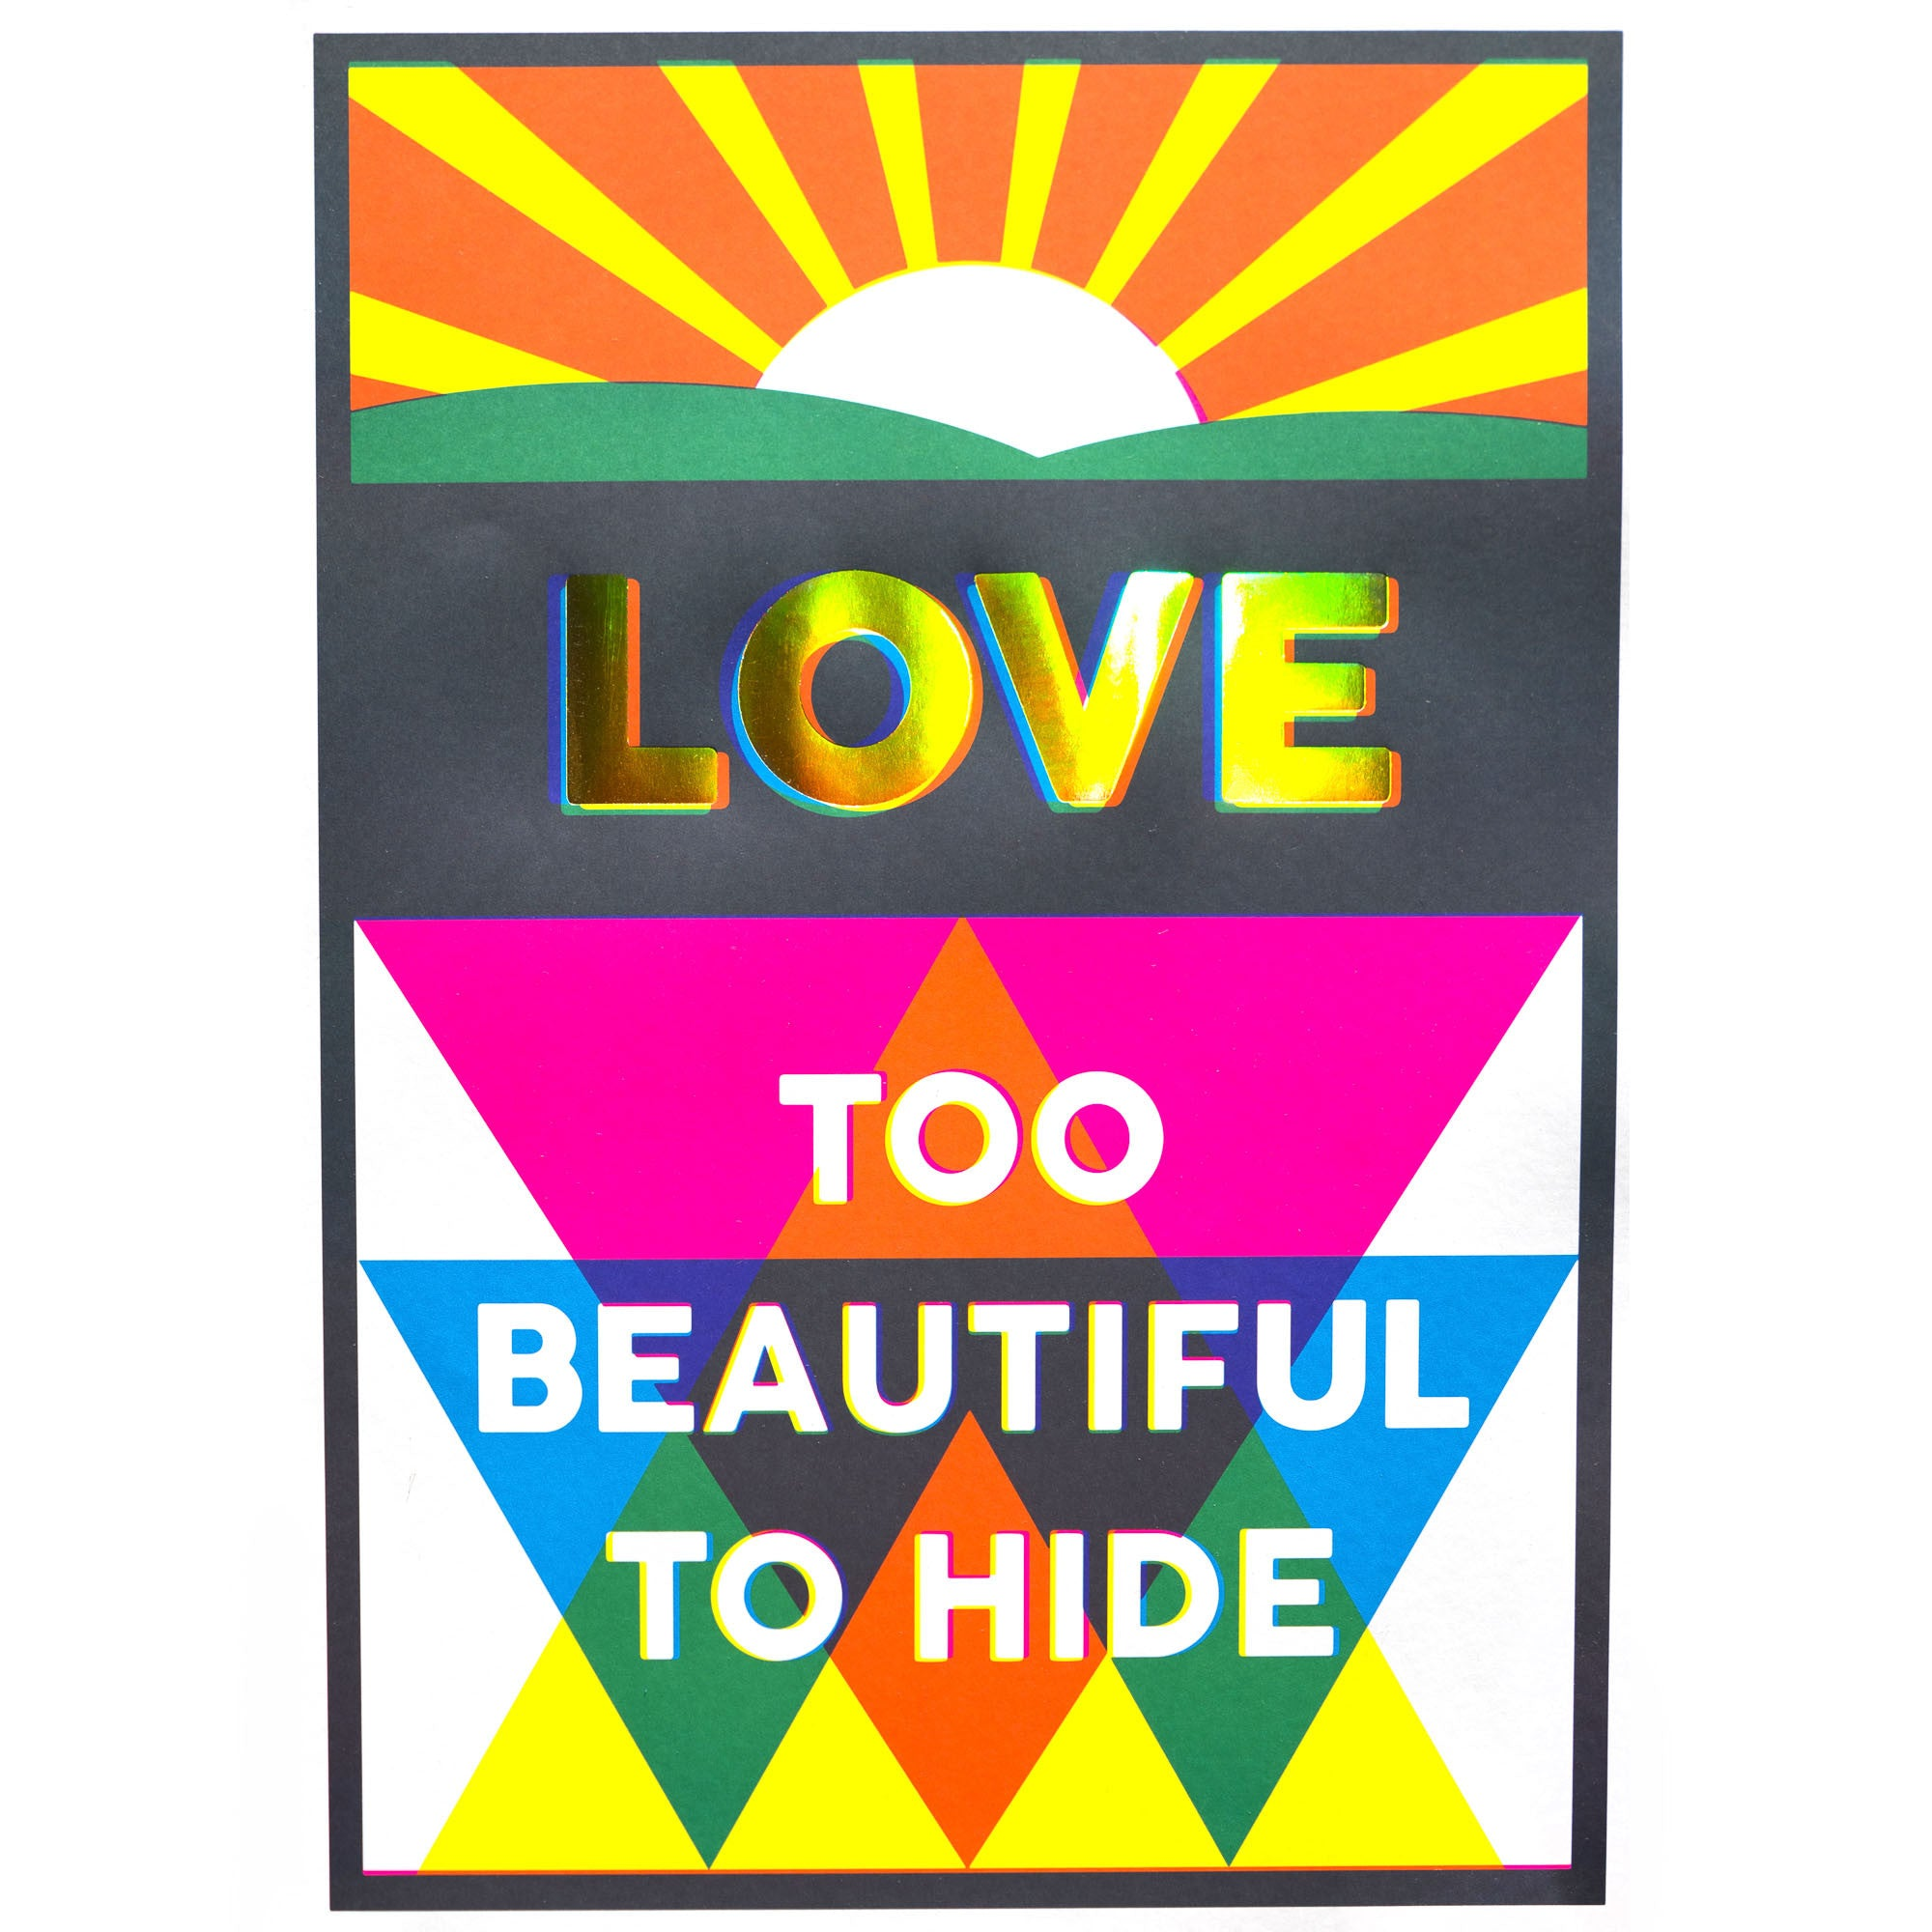 LOVE TOO BEAUTIFUL TO HIDE